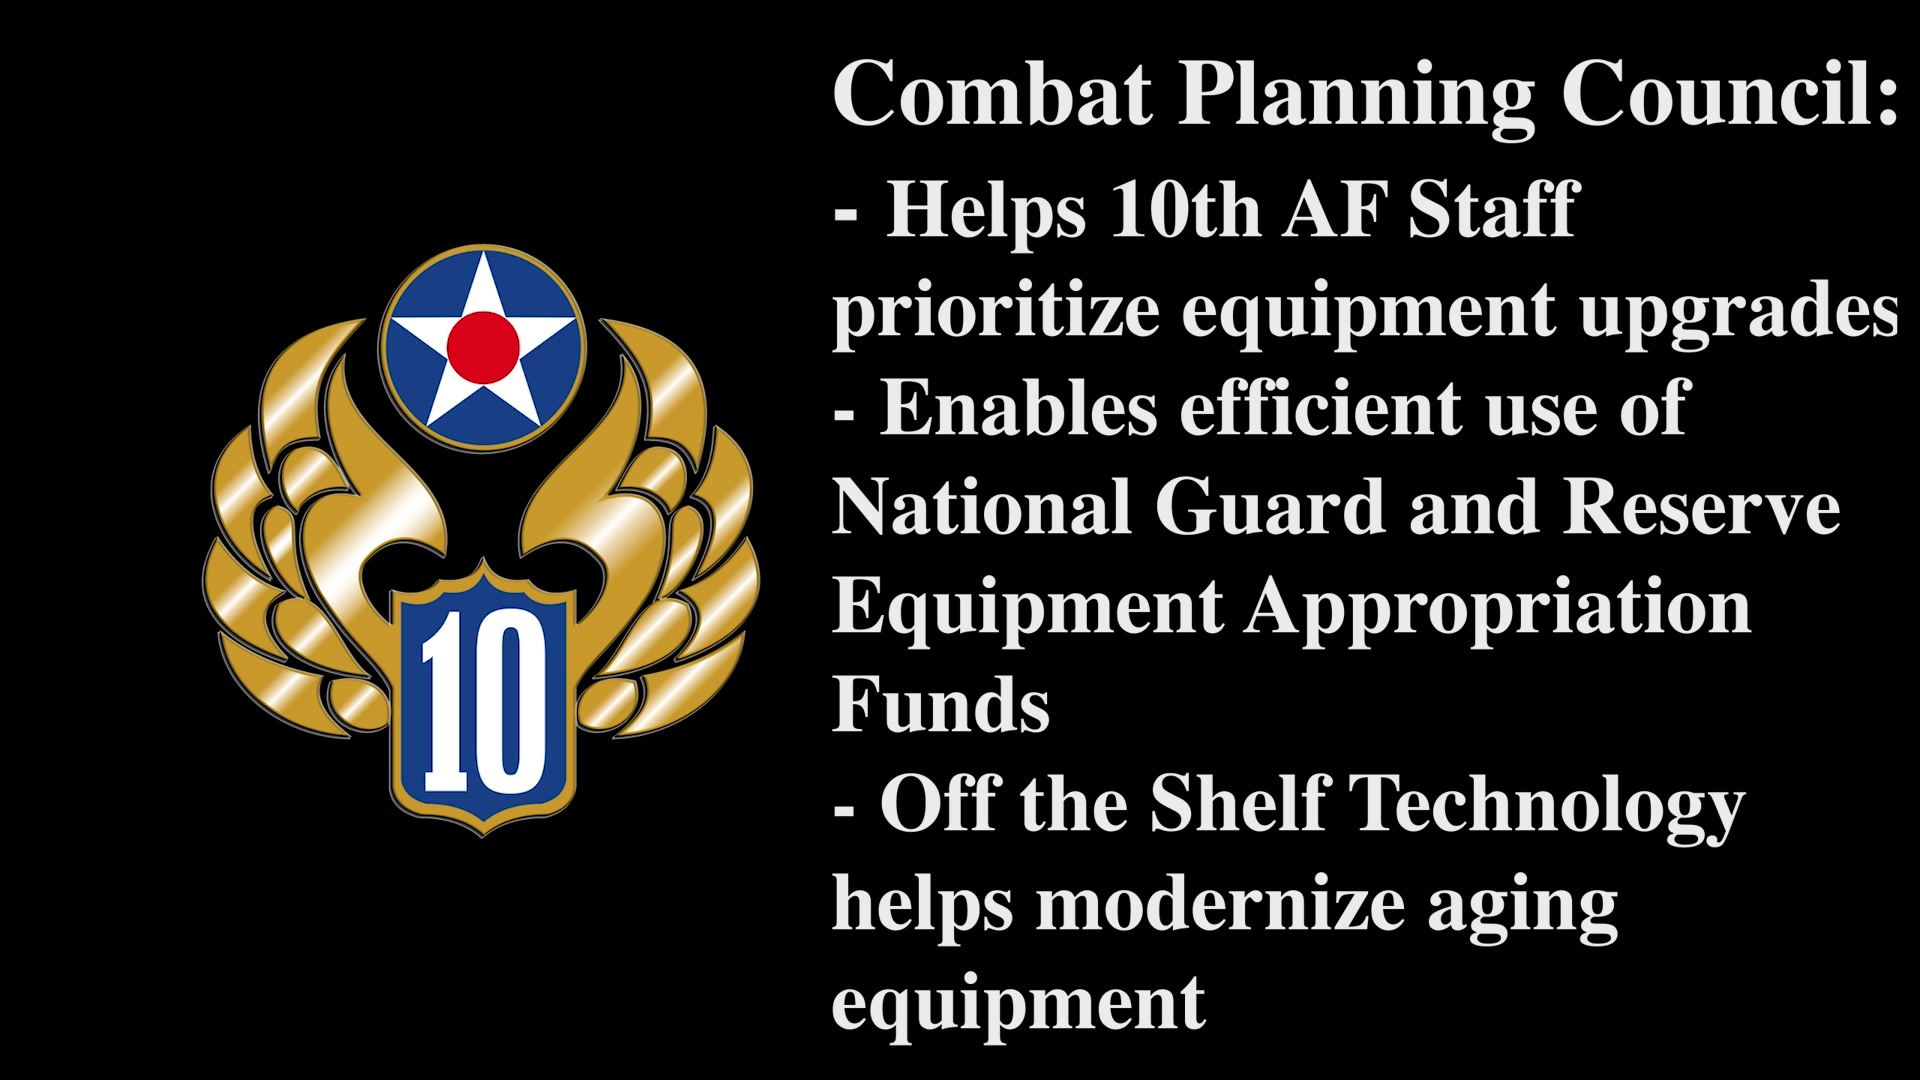 """For the April Commentary, Maj. Gen. Ronald B. """"Bruce"""" Miller, 10th Air Force Commander, and Chief Master Sgt. James Loper, 10th Air Force Command Chief, discuss Tenth Air Force's Mission, Vision, and Priorities."""